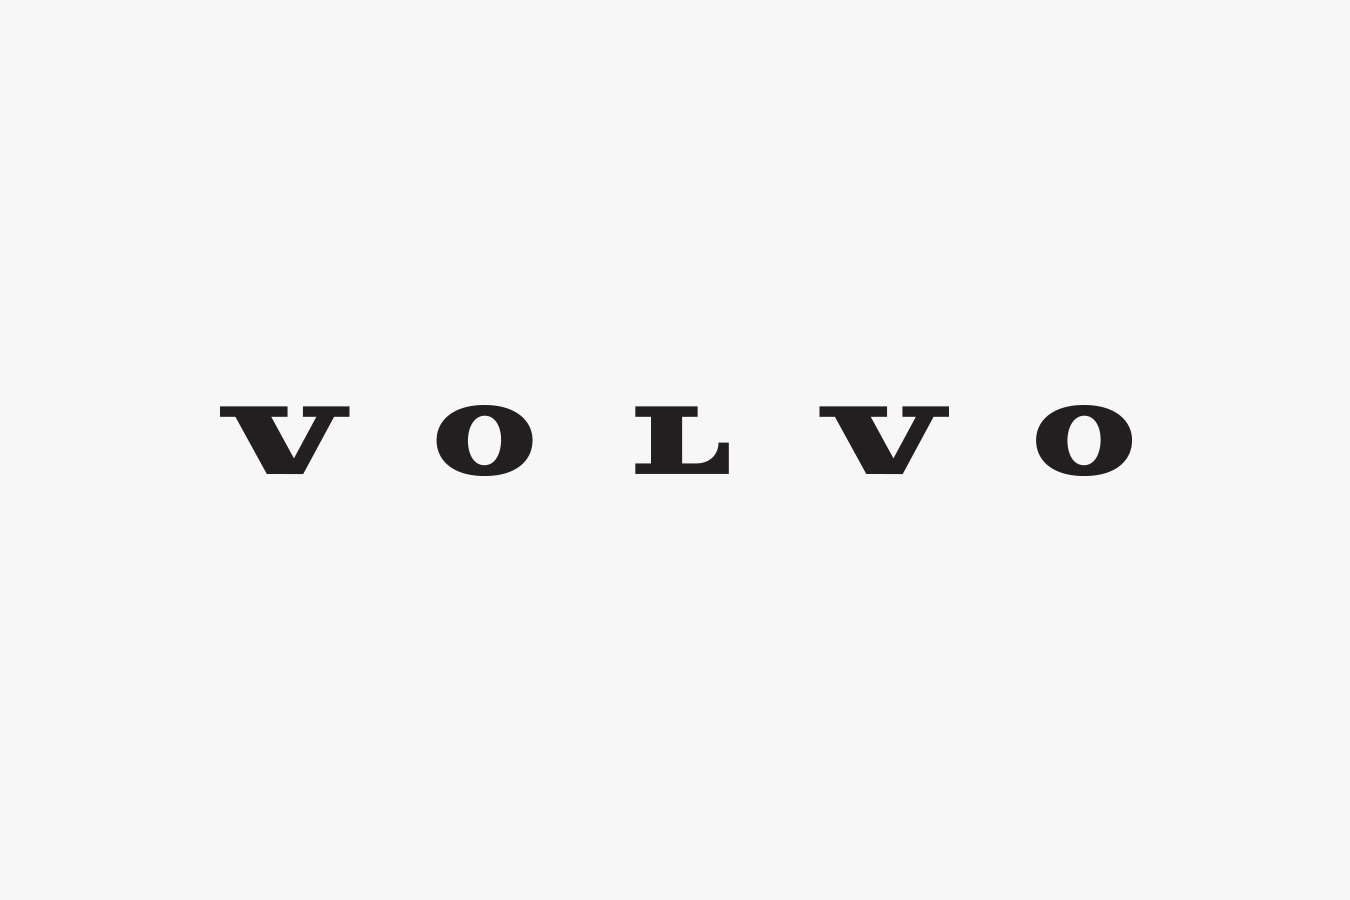 Volvo Logos - Iron Mark CMYK